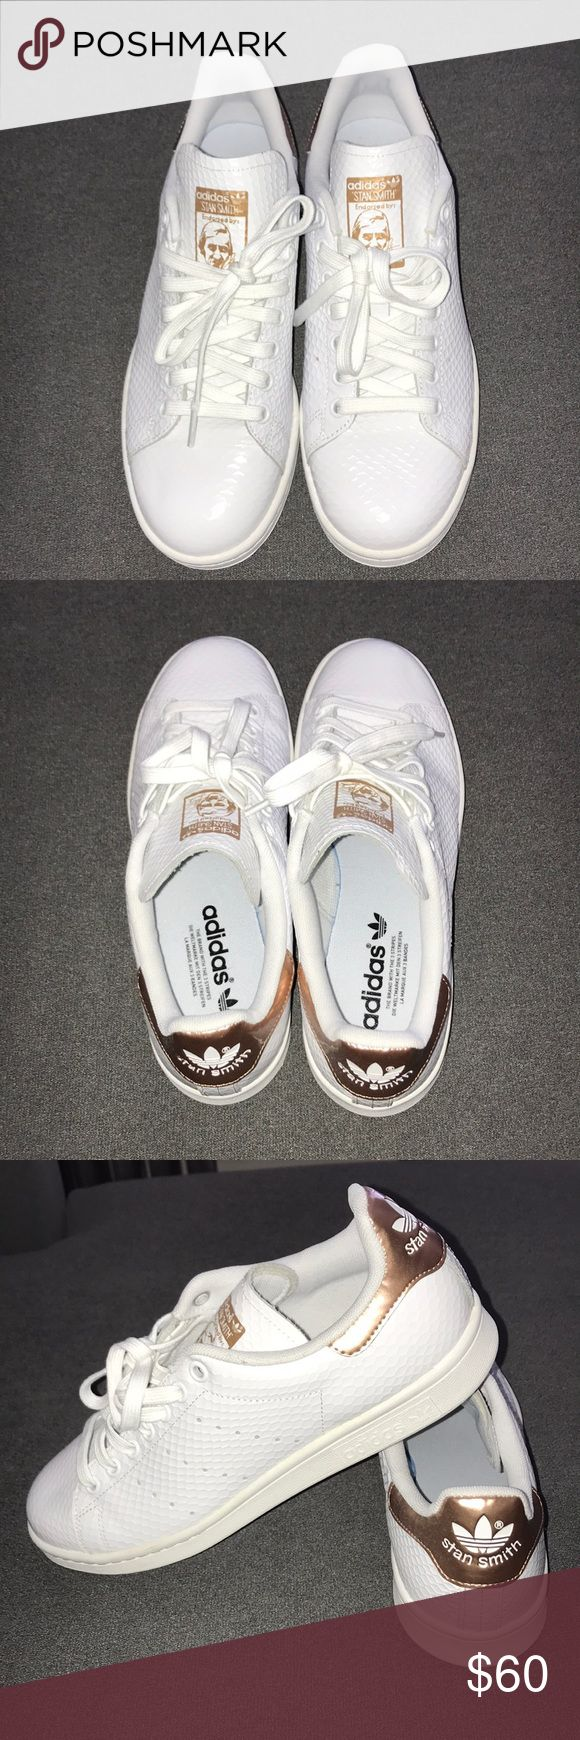 Adidas Stan Smith Sneakers Never worn, perfect condition, Adidas Stan Smith white snake skin and rose gold sneakers.  Runs 1/2 size big. adidas Shoes Sneakers